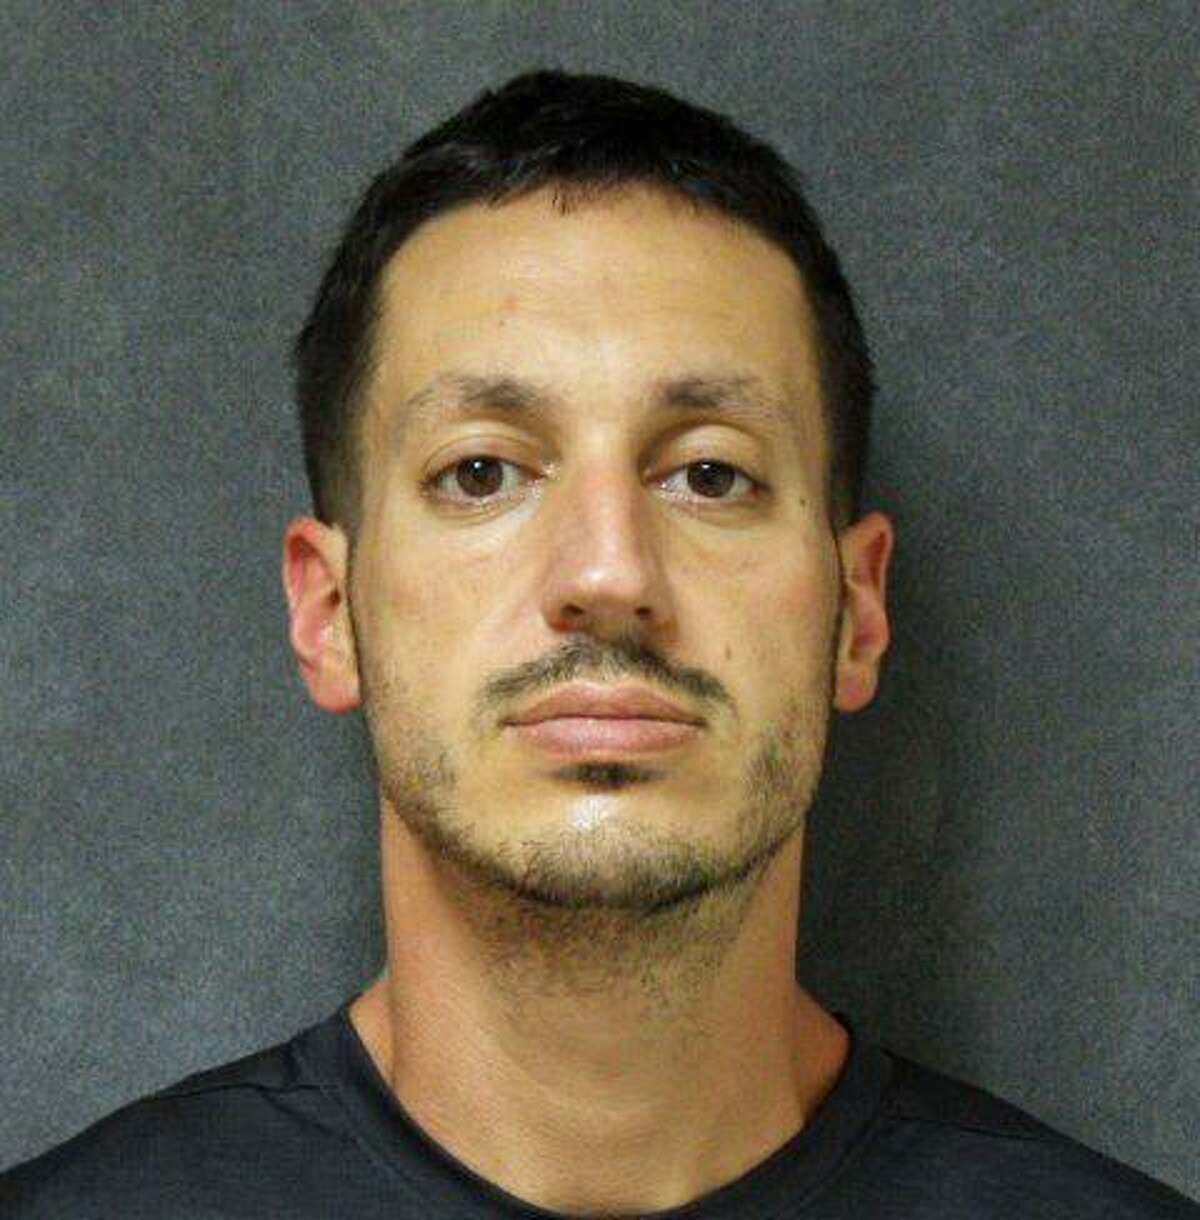 Timothy Stumpo, 34, of Wakelee Avenue, was charged with two counts of third-degree burglary, two counts of sixth-degree larceny and two counts of criminal attempt at third-degree burglary, Ansonia police said.